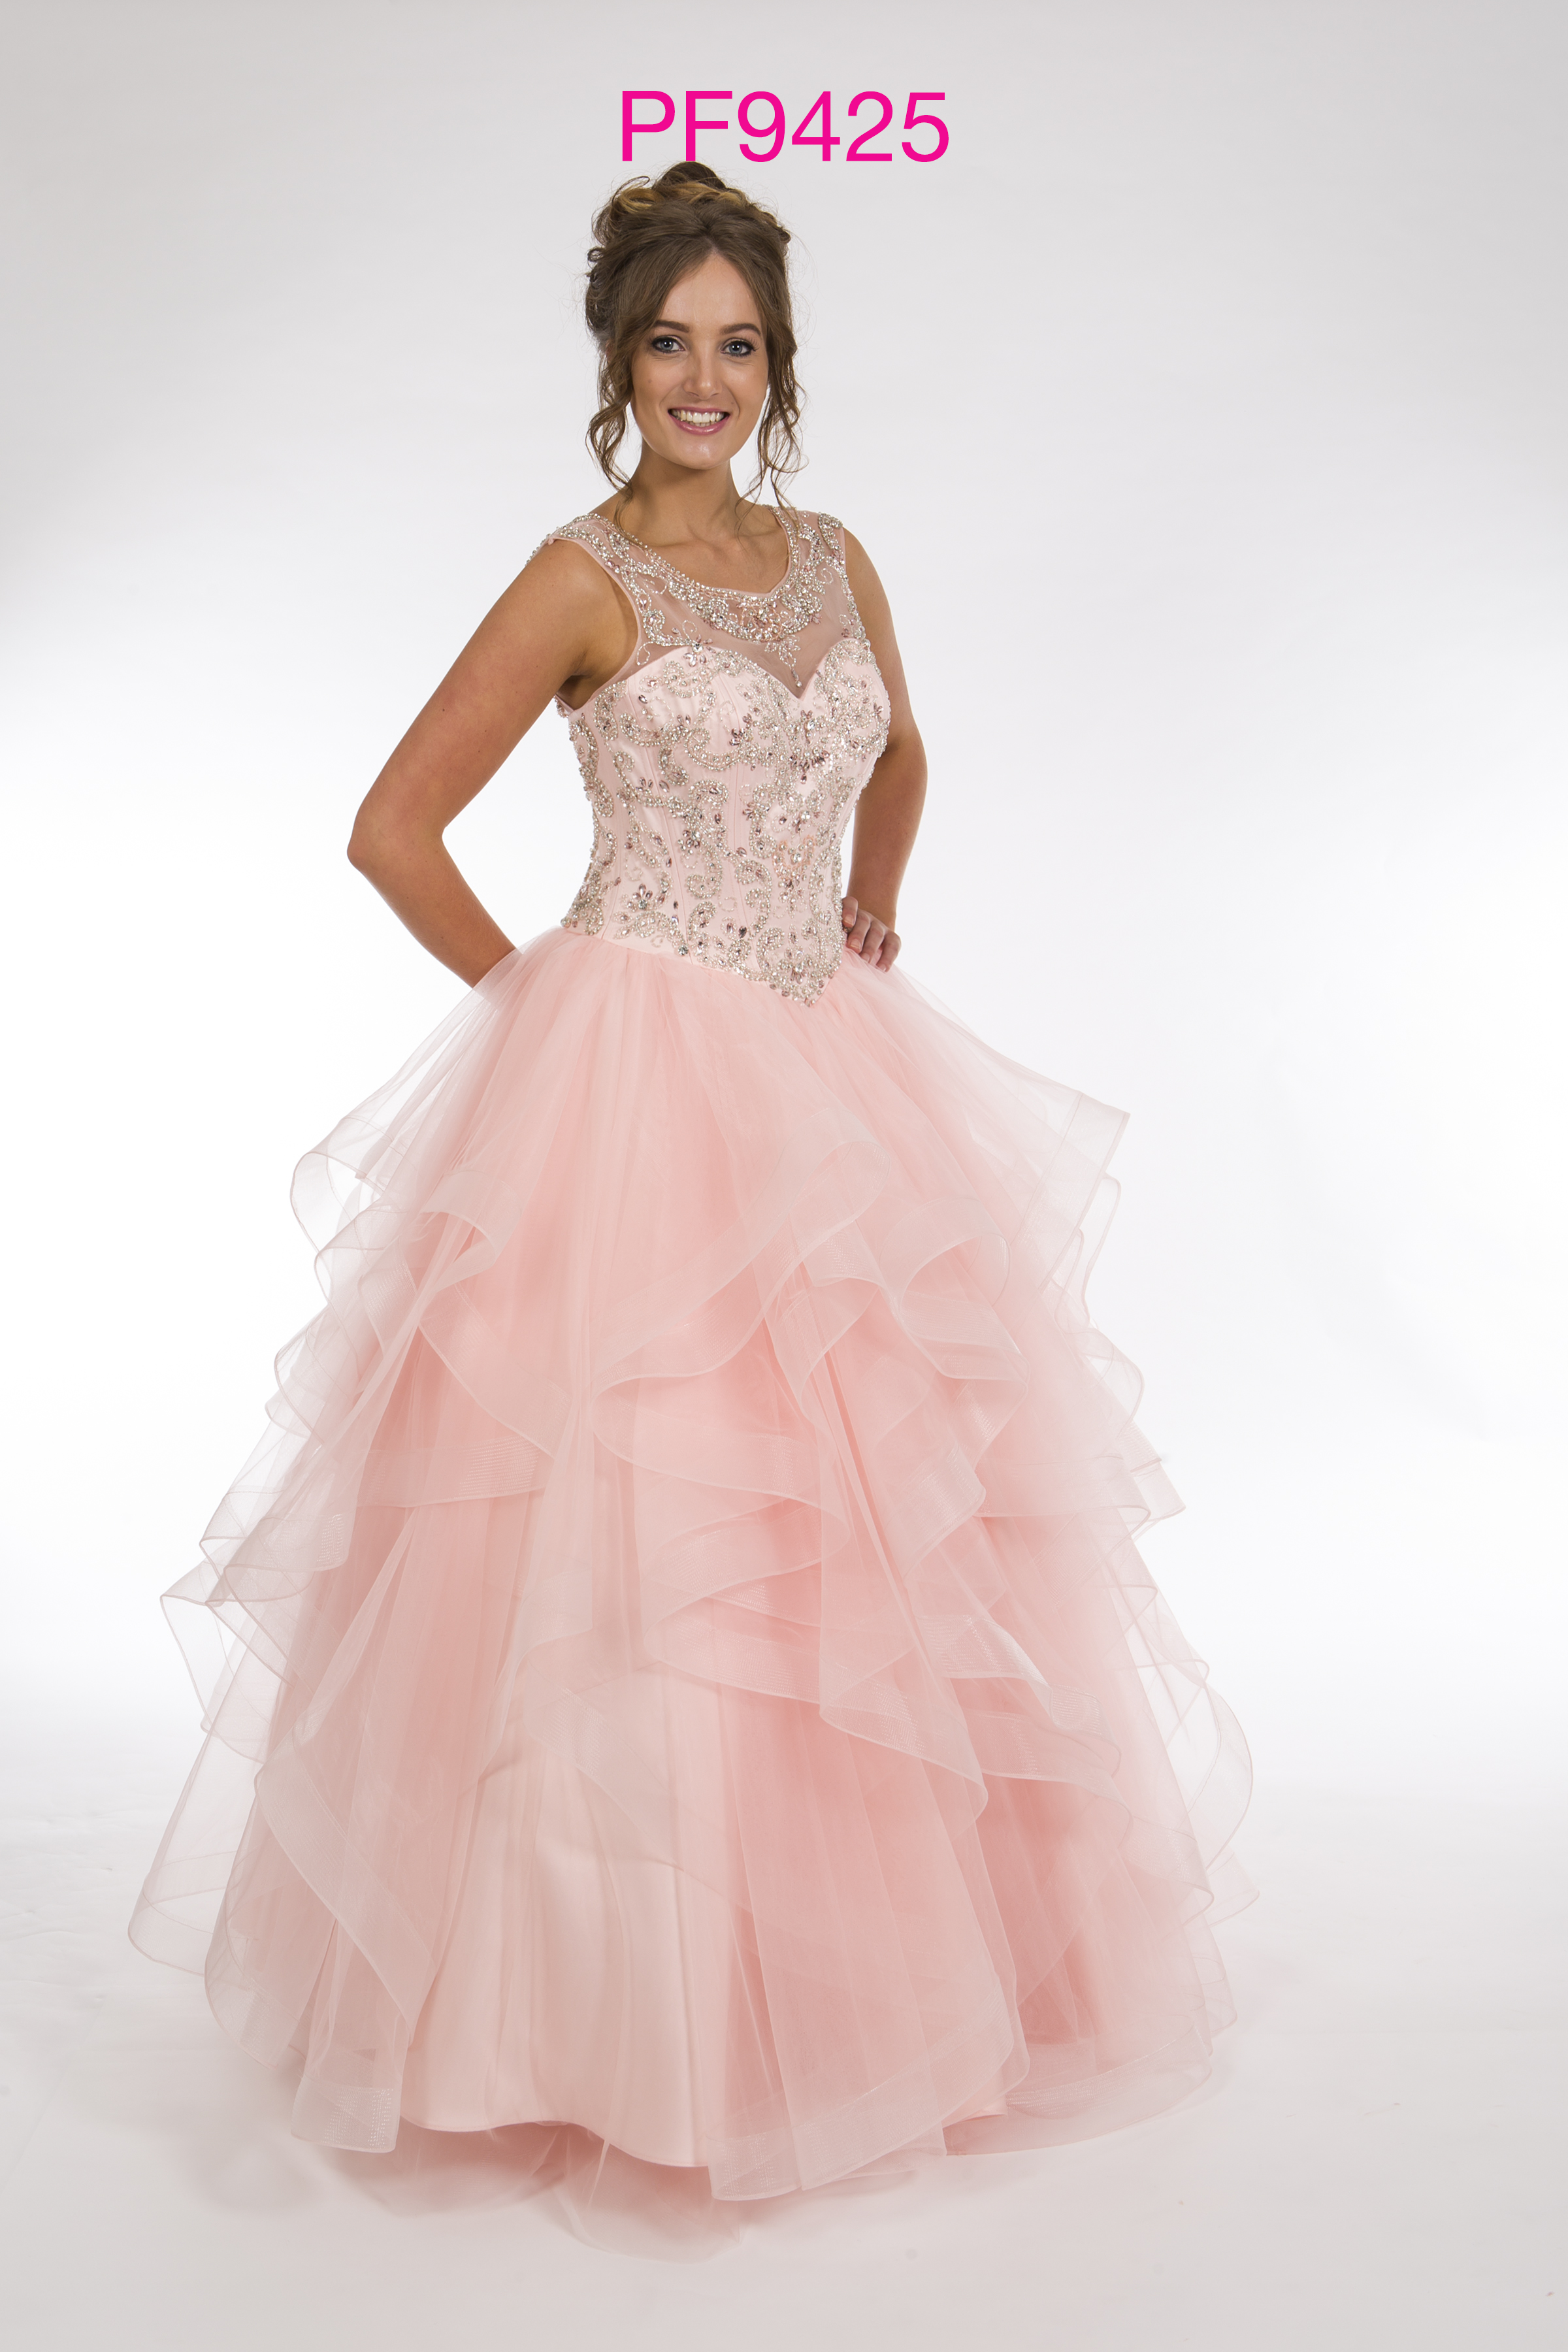 Prom Frocks PF9425 Blush Prom Dress - Prom Frocks UK Prom Dresses